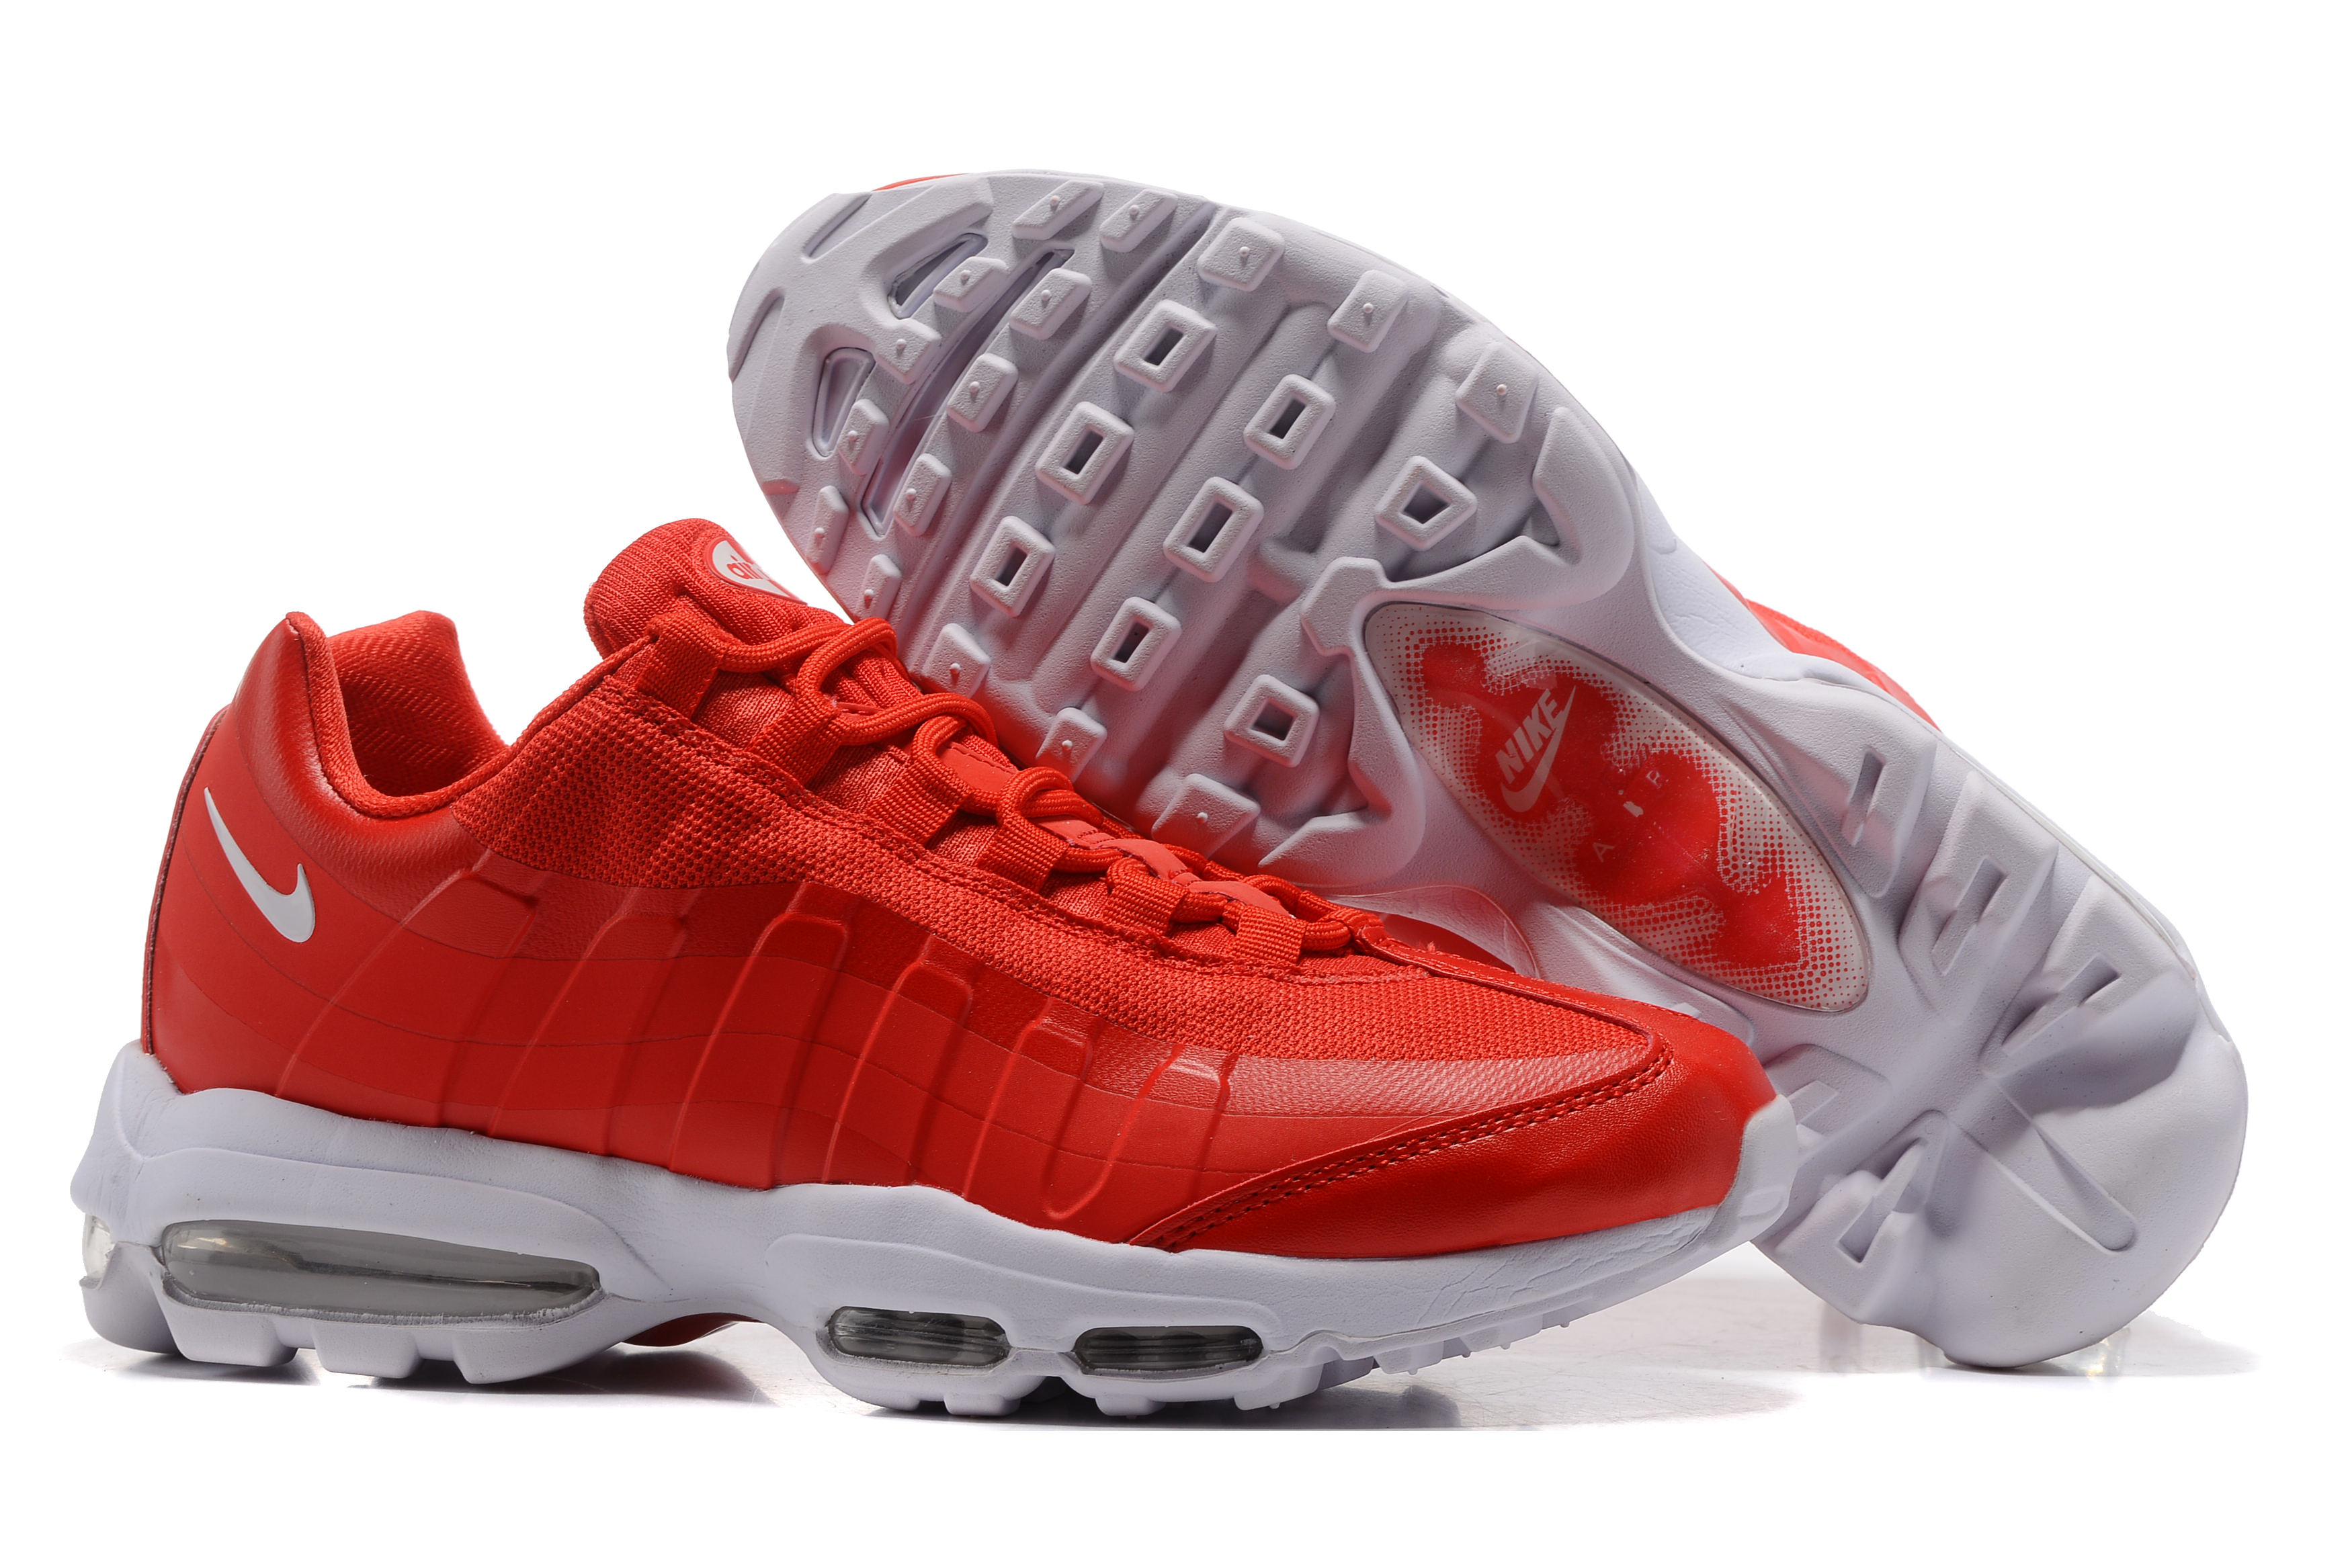 Nike Air Max 95 Red White Shoes